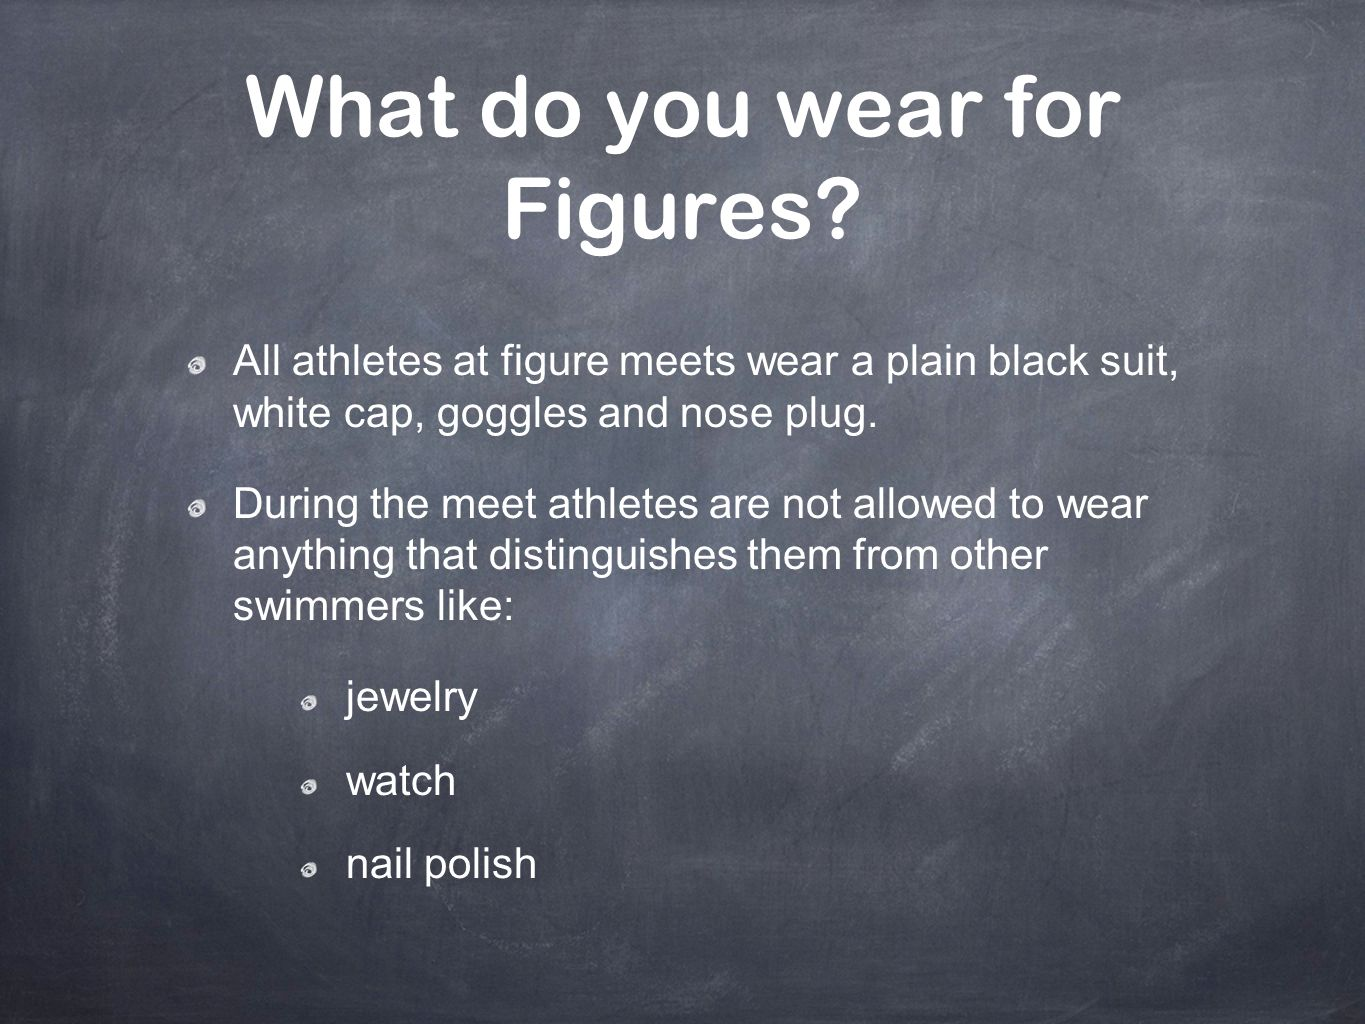 What do you wear for Figures